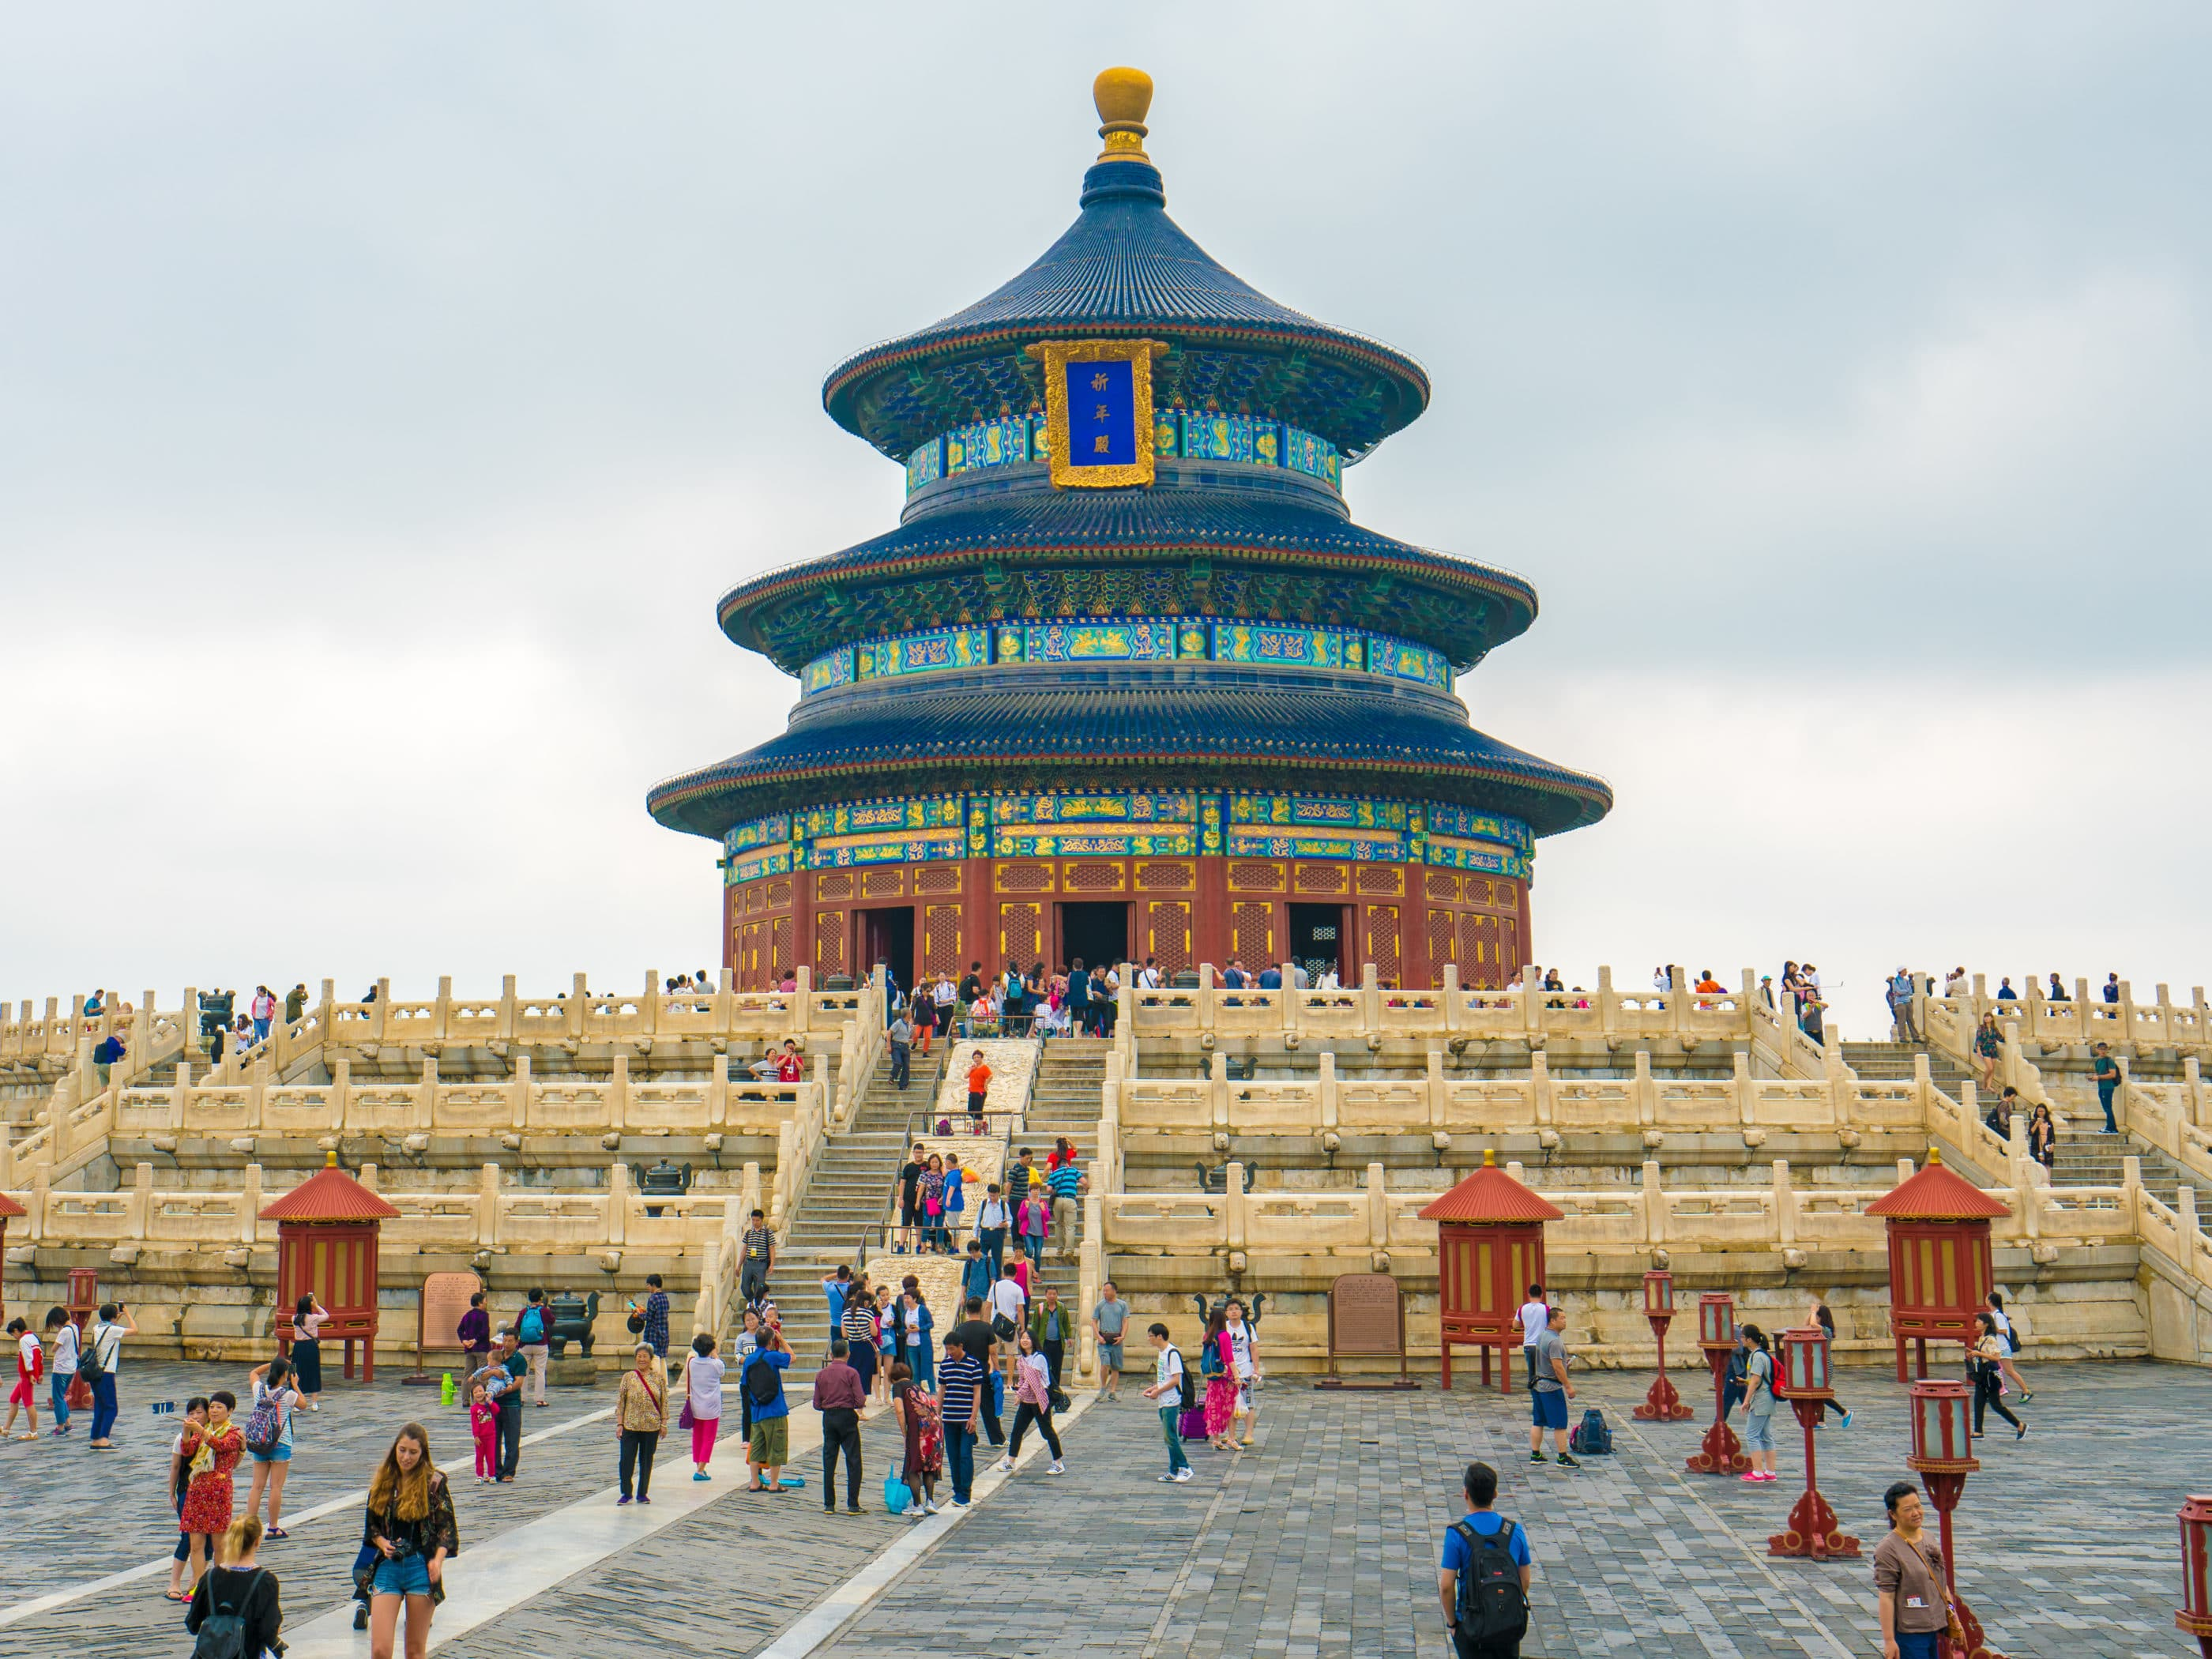 Things to do in Beijing: Visit the Temple of Heaven